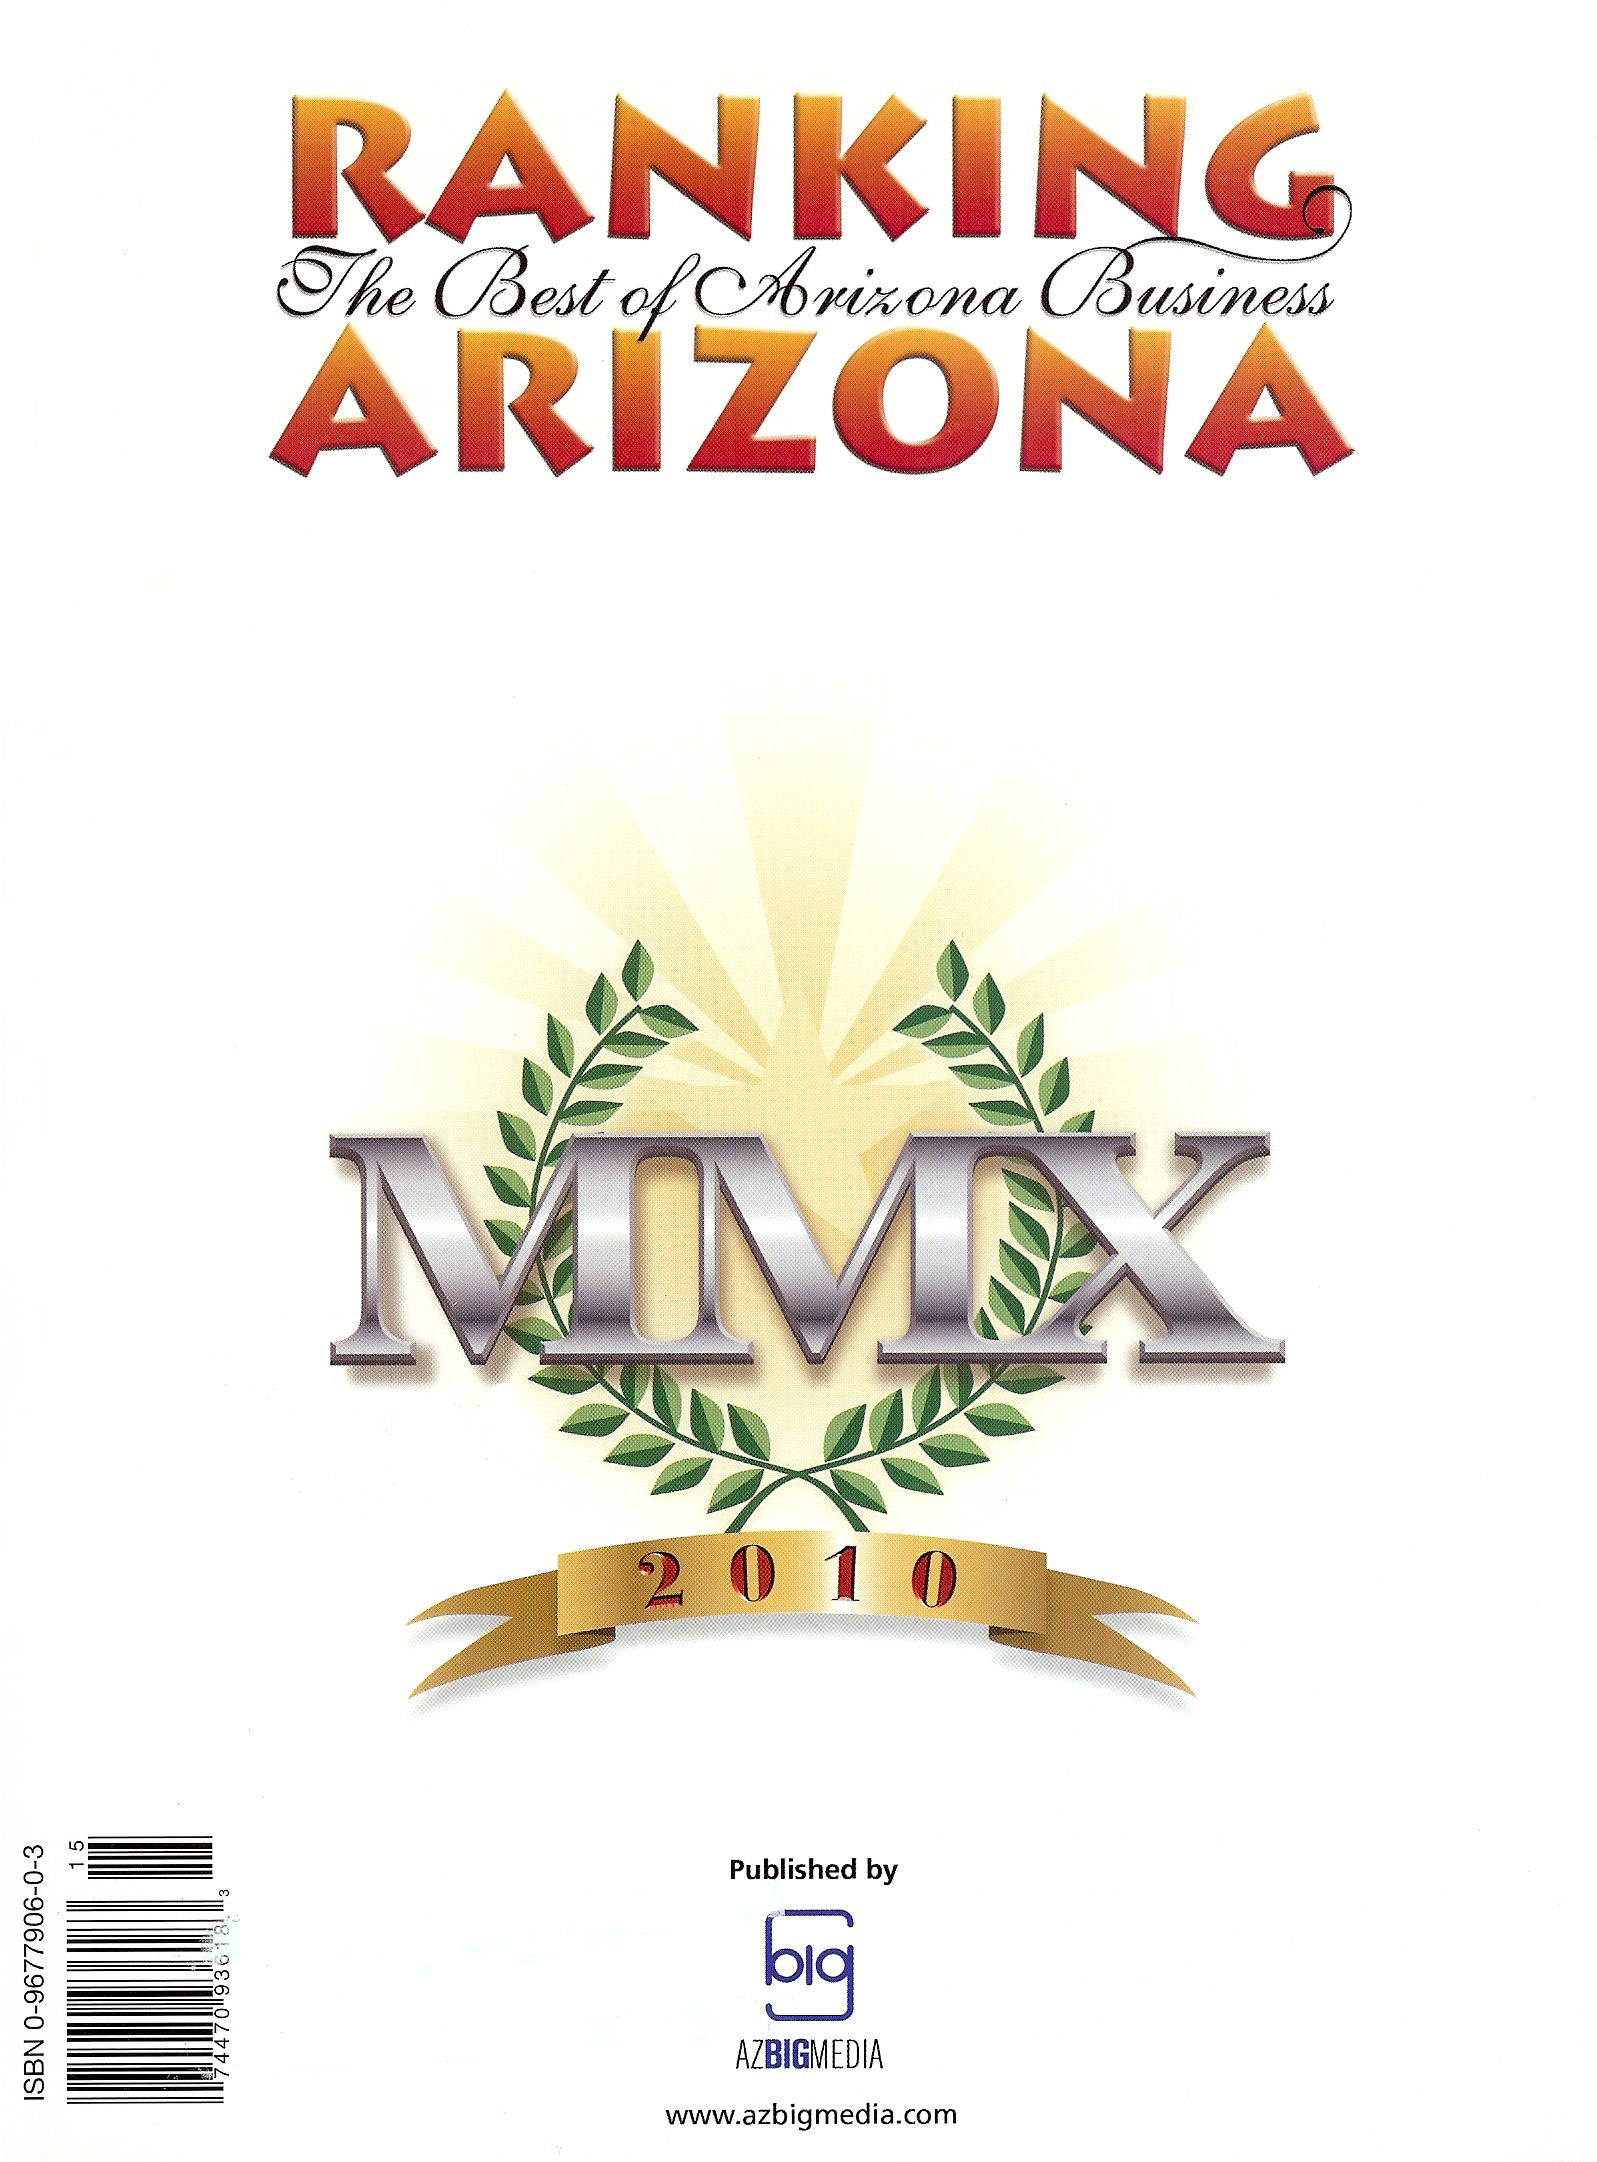 Ranking Arizona Award - The Best of Arizona Business